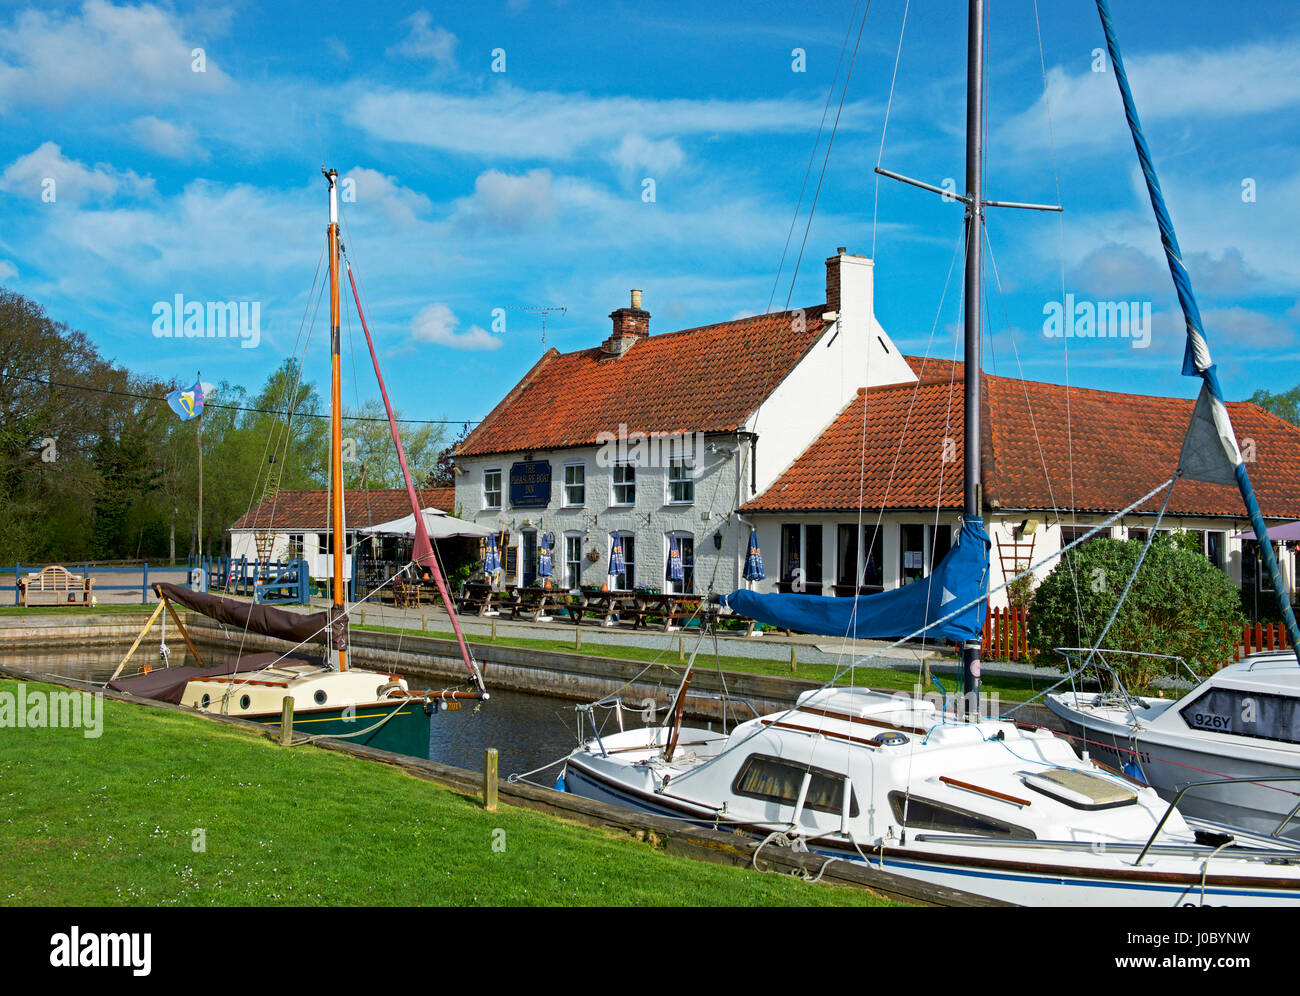 The Pleasure Boat Inn, Hickling, Norfolk Broads, Norfolk, England UK - Stock Image